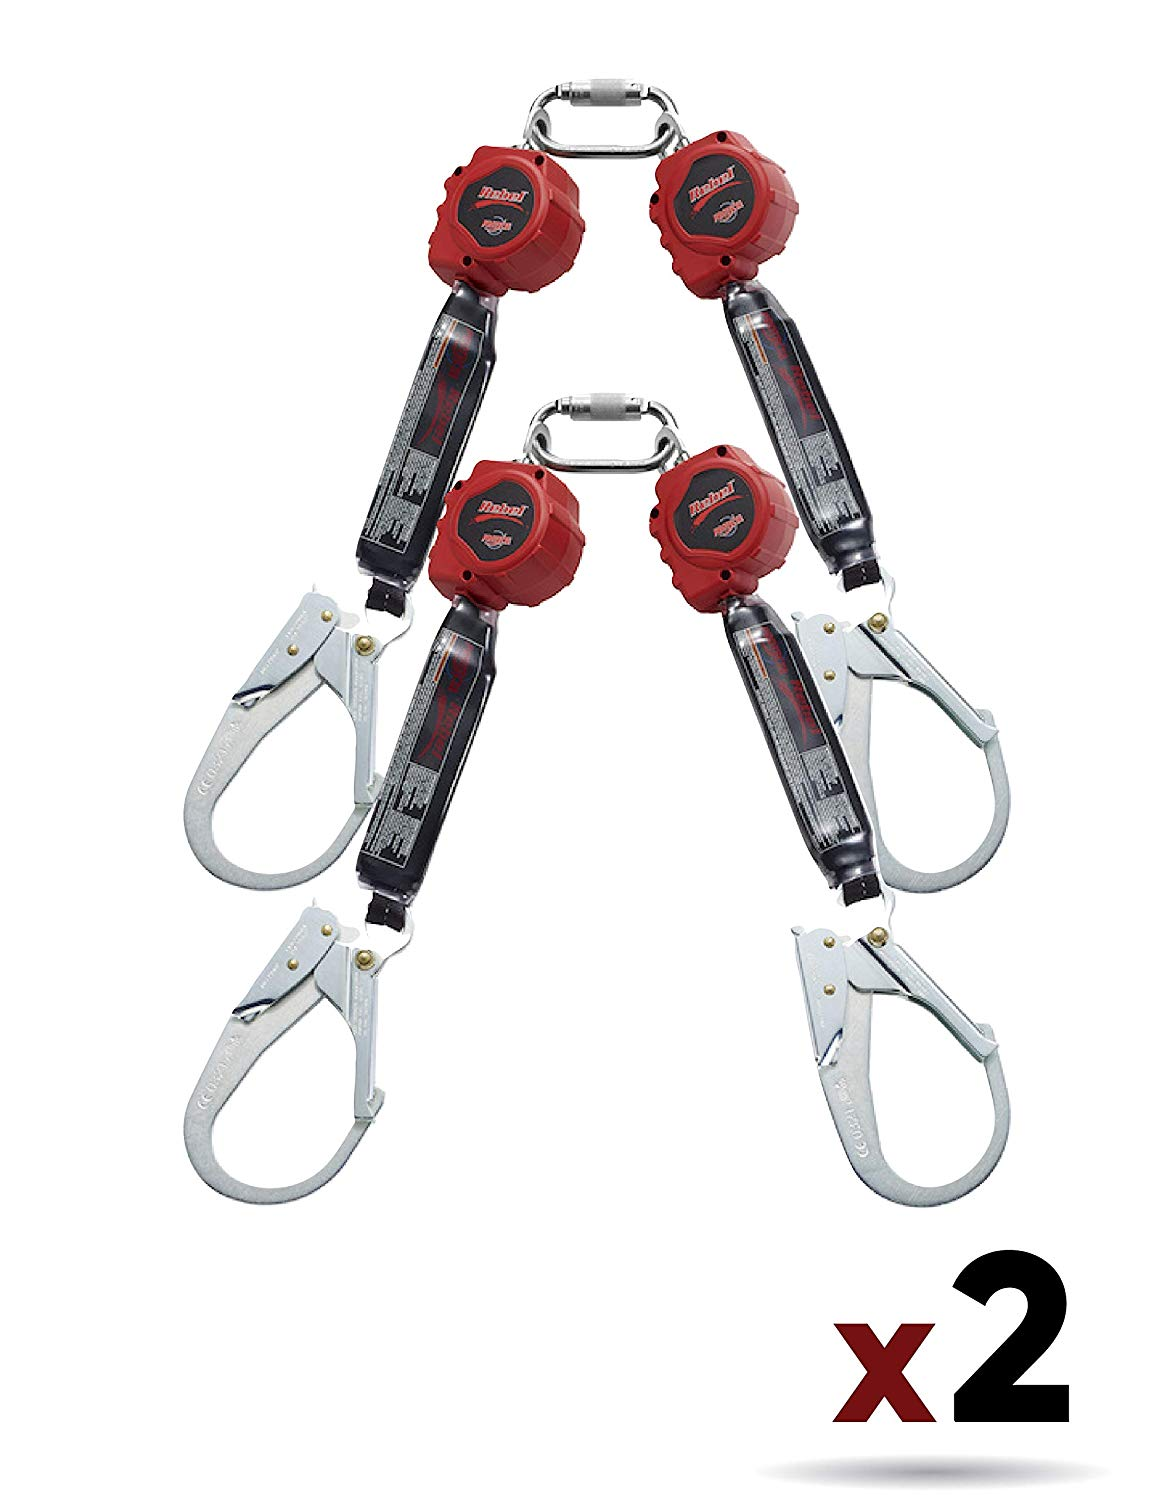 3M Protecta 3100414 Self Retracting Lifeline Rebel 6-Foot (1.8M) Web Twin, Steel Rebar And Carabiner, Black/Red by 3M Fall Protection Business (2 Pack)